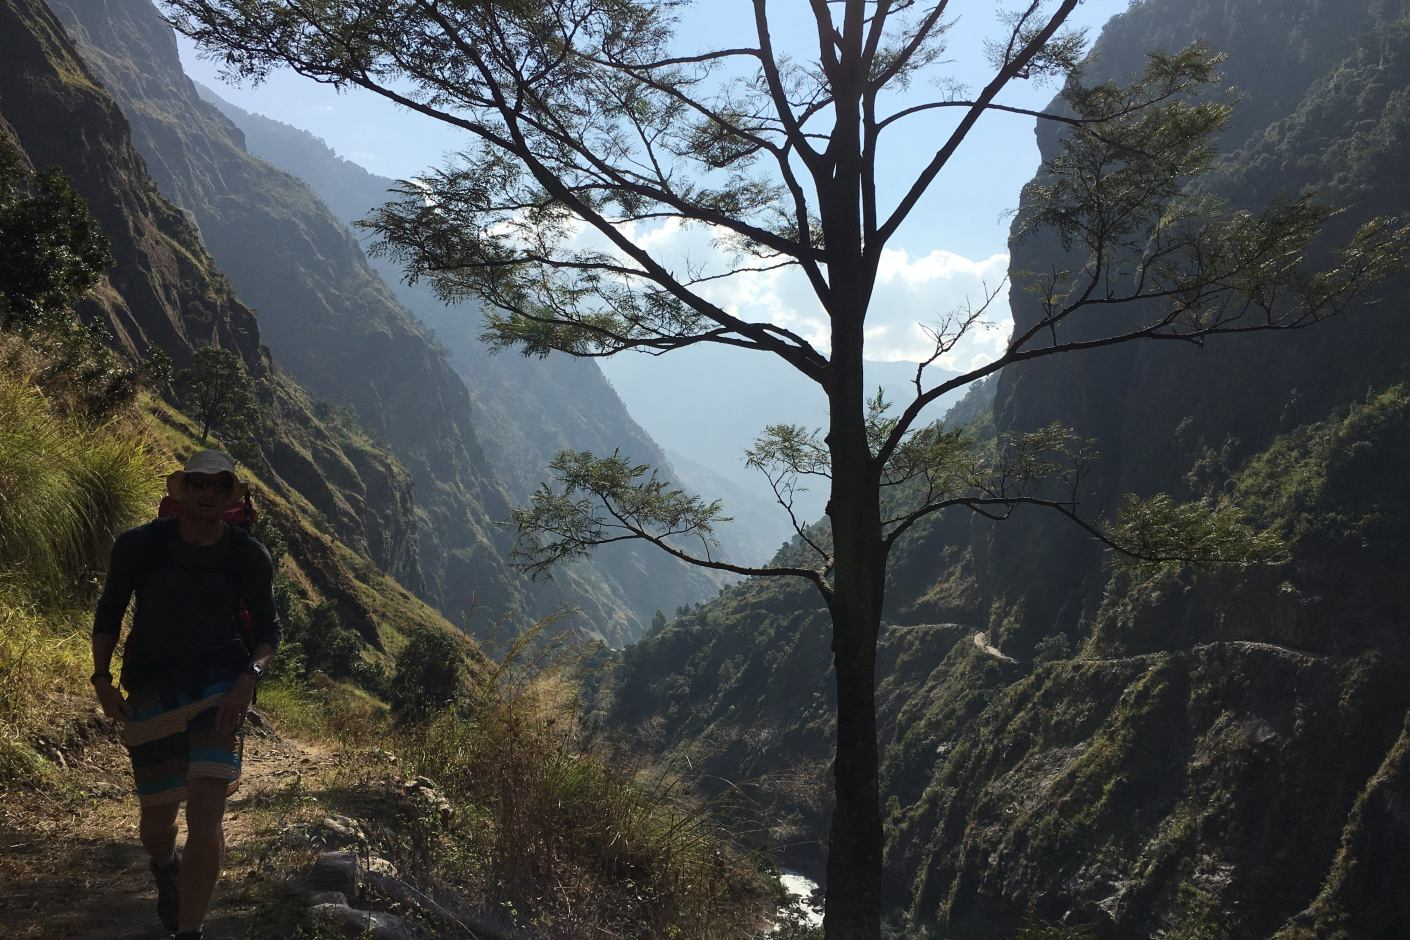 The new NATT trails are the best way to see more temperate parts of the Himalayas.